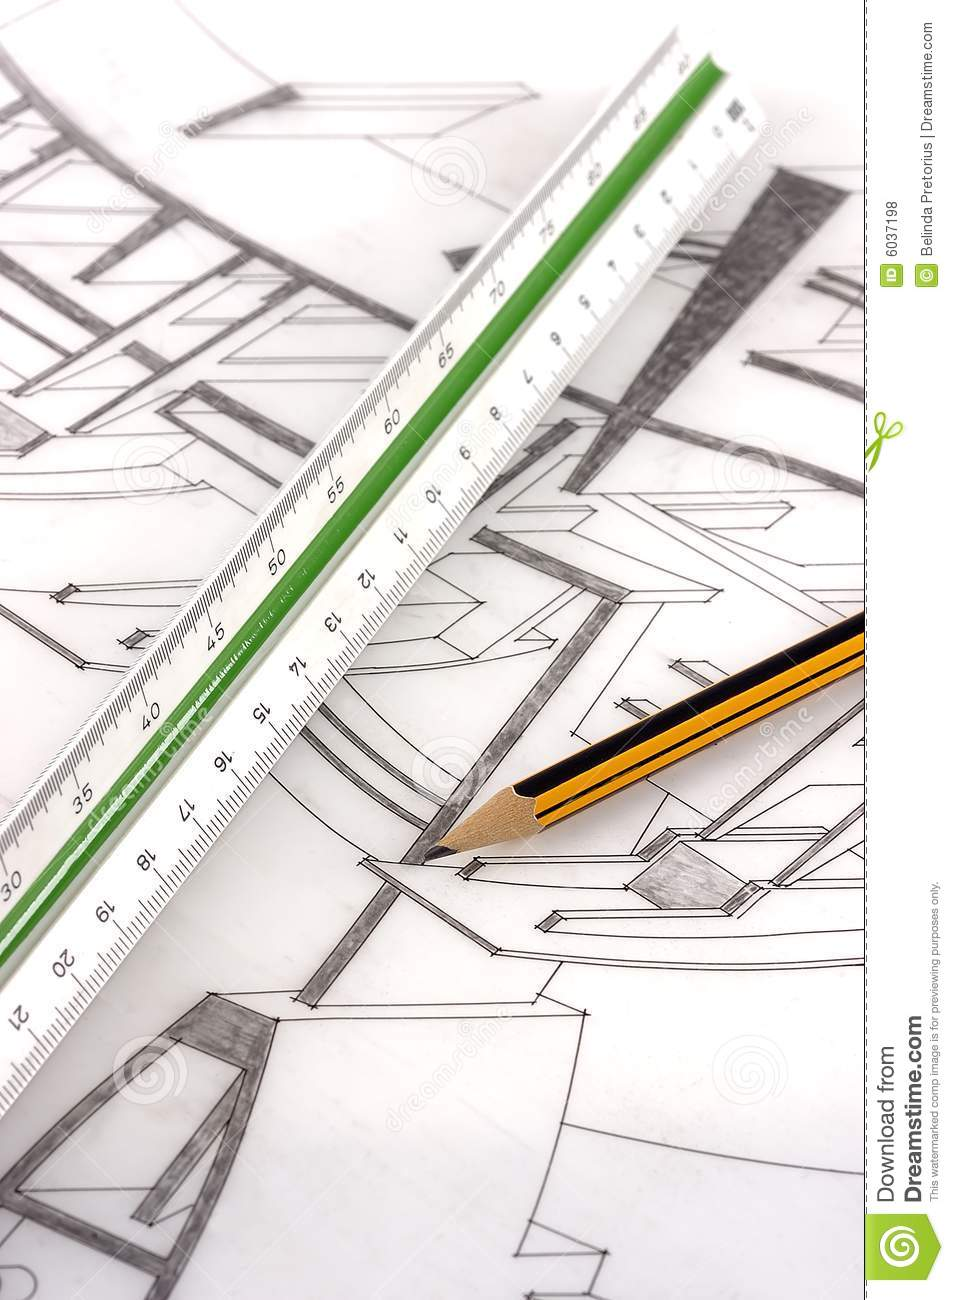 A scale ruler and pencil on a technical drawing stock for Blueprint scale